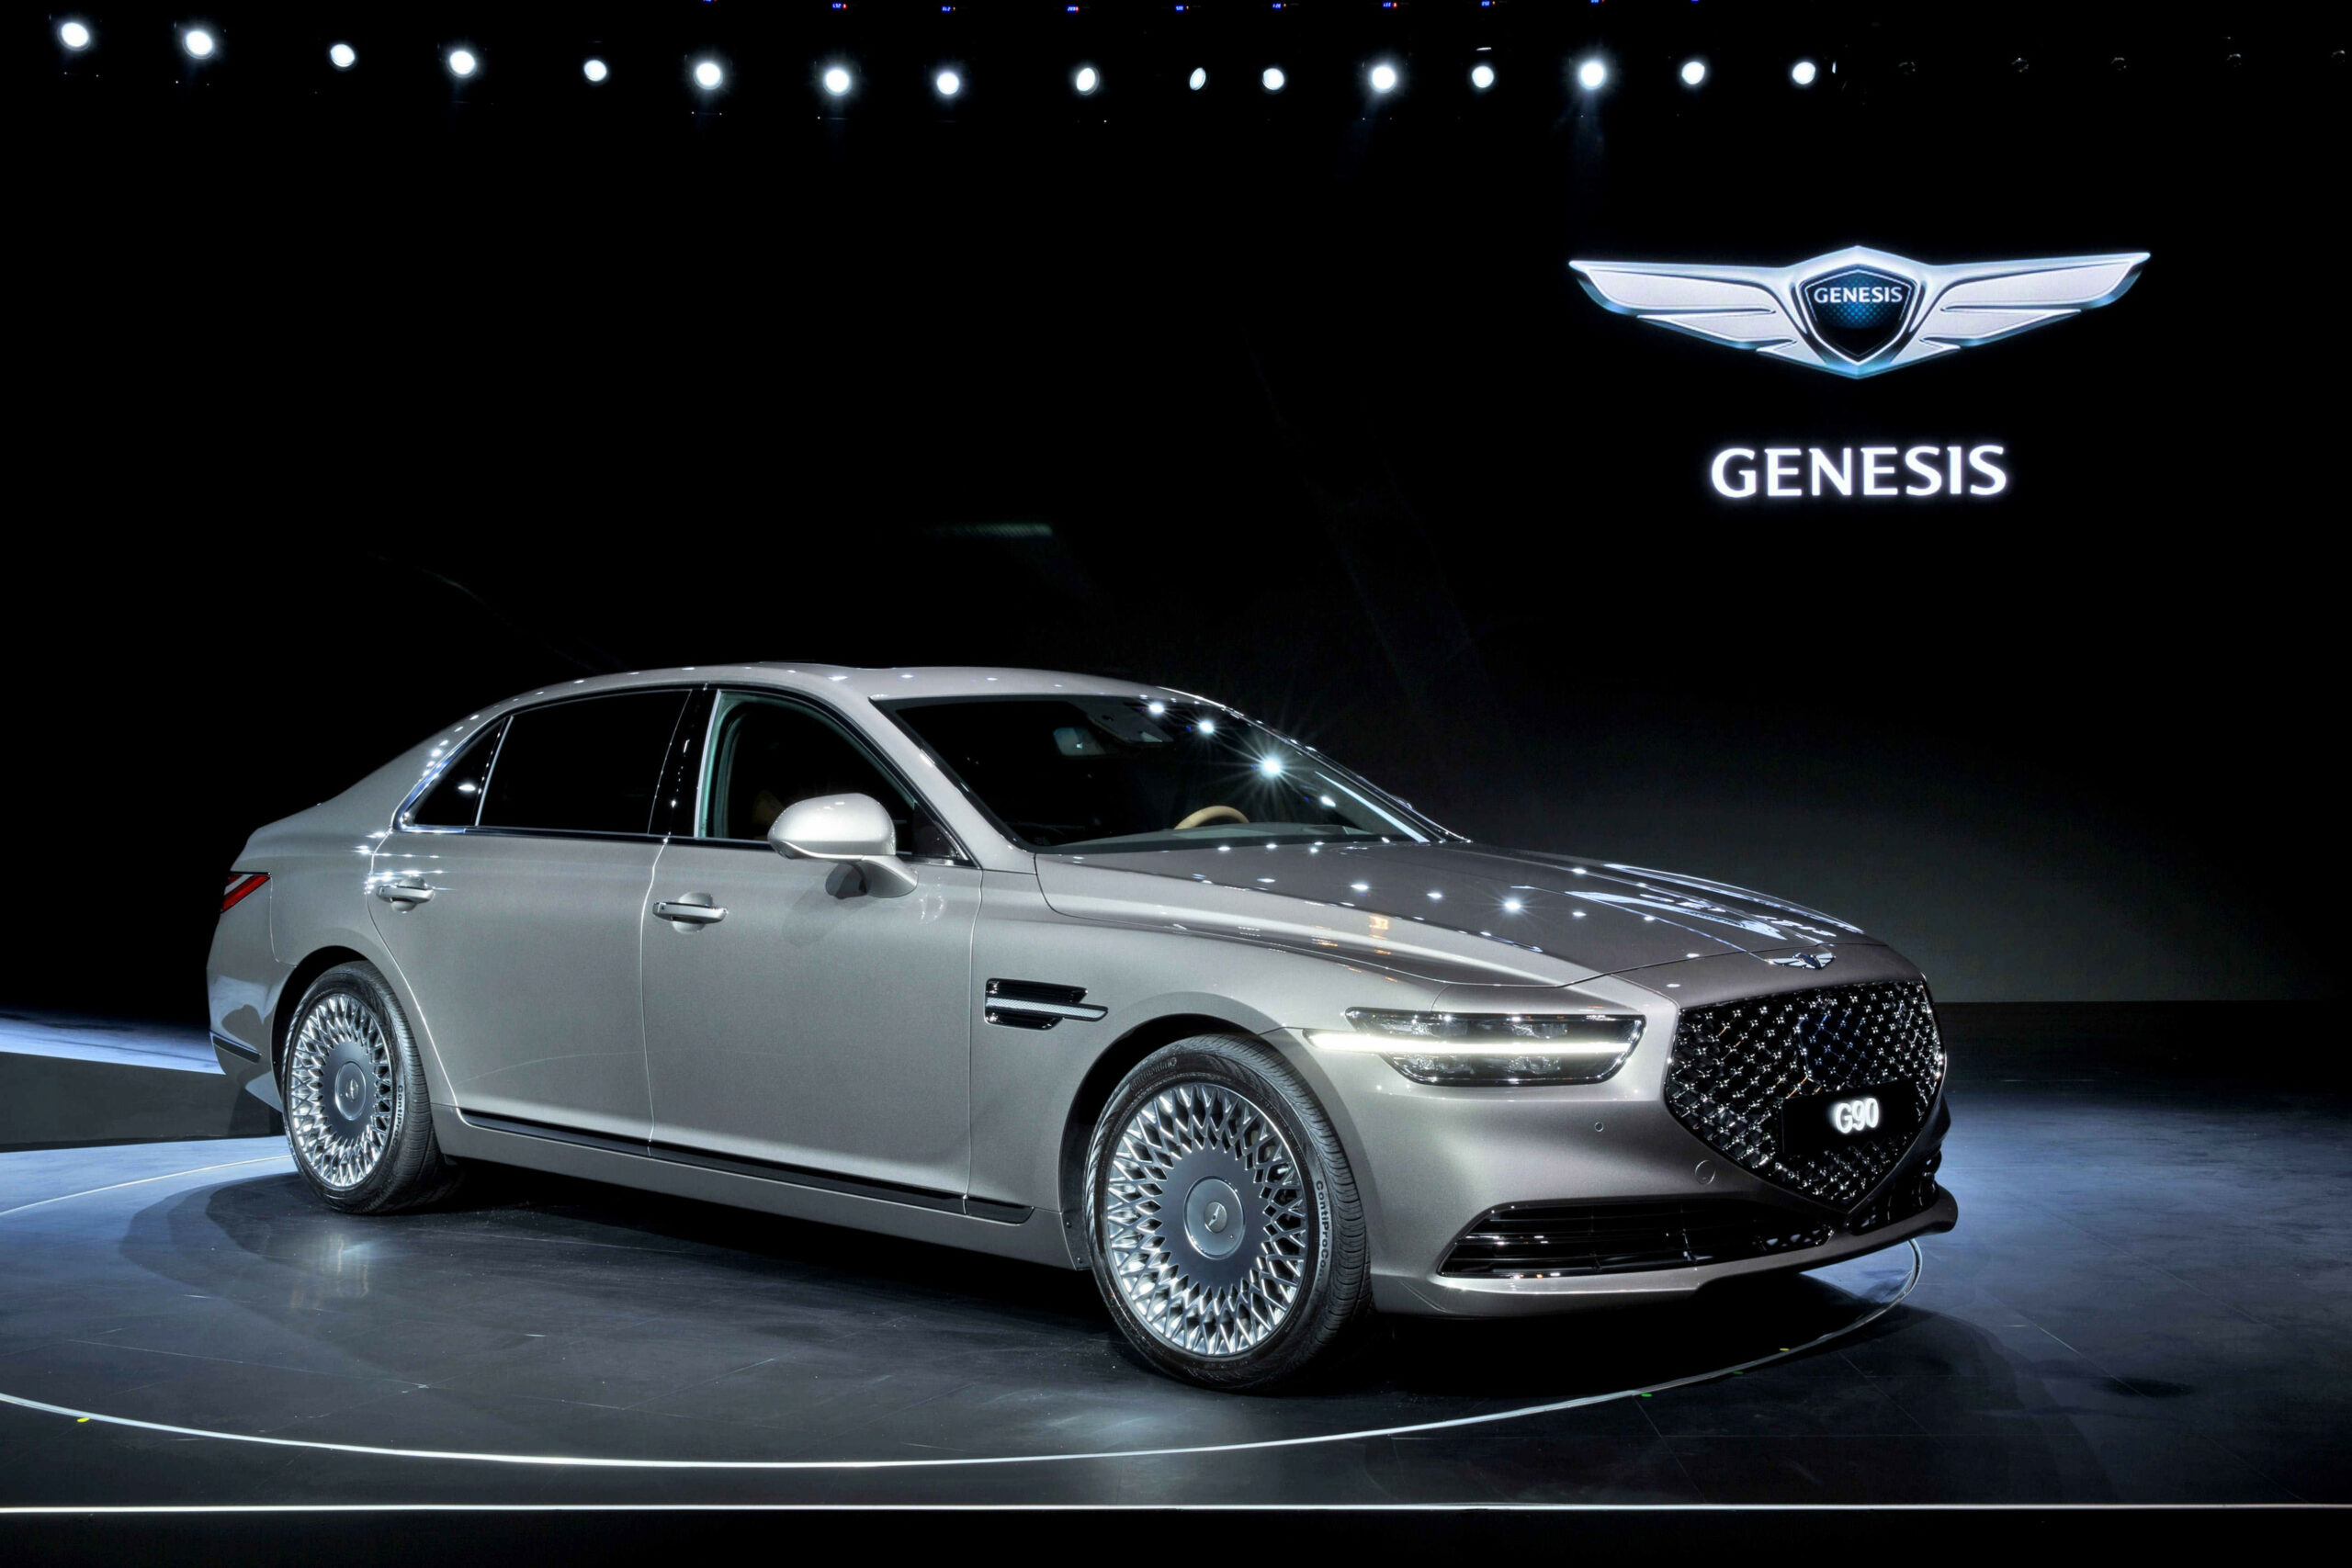 The 11 Genesis G11 Flagship Has New Style Inside and Out - 2020 hyundai equus